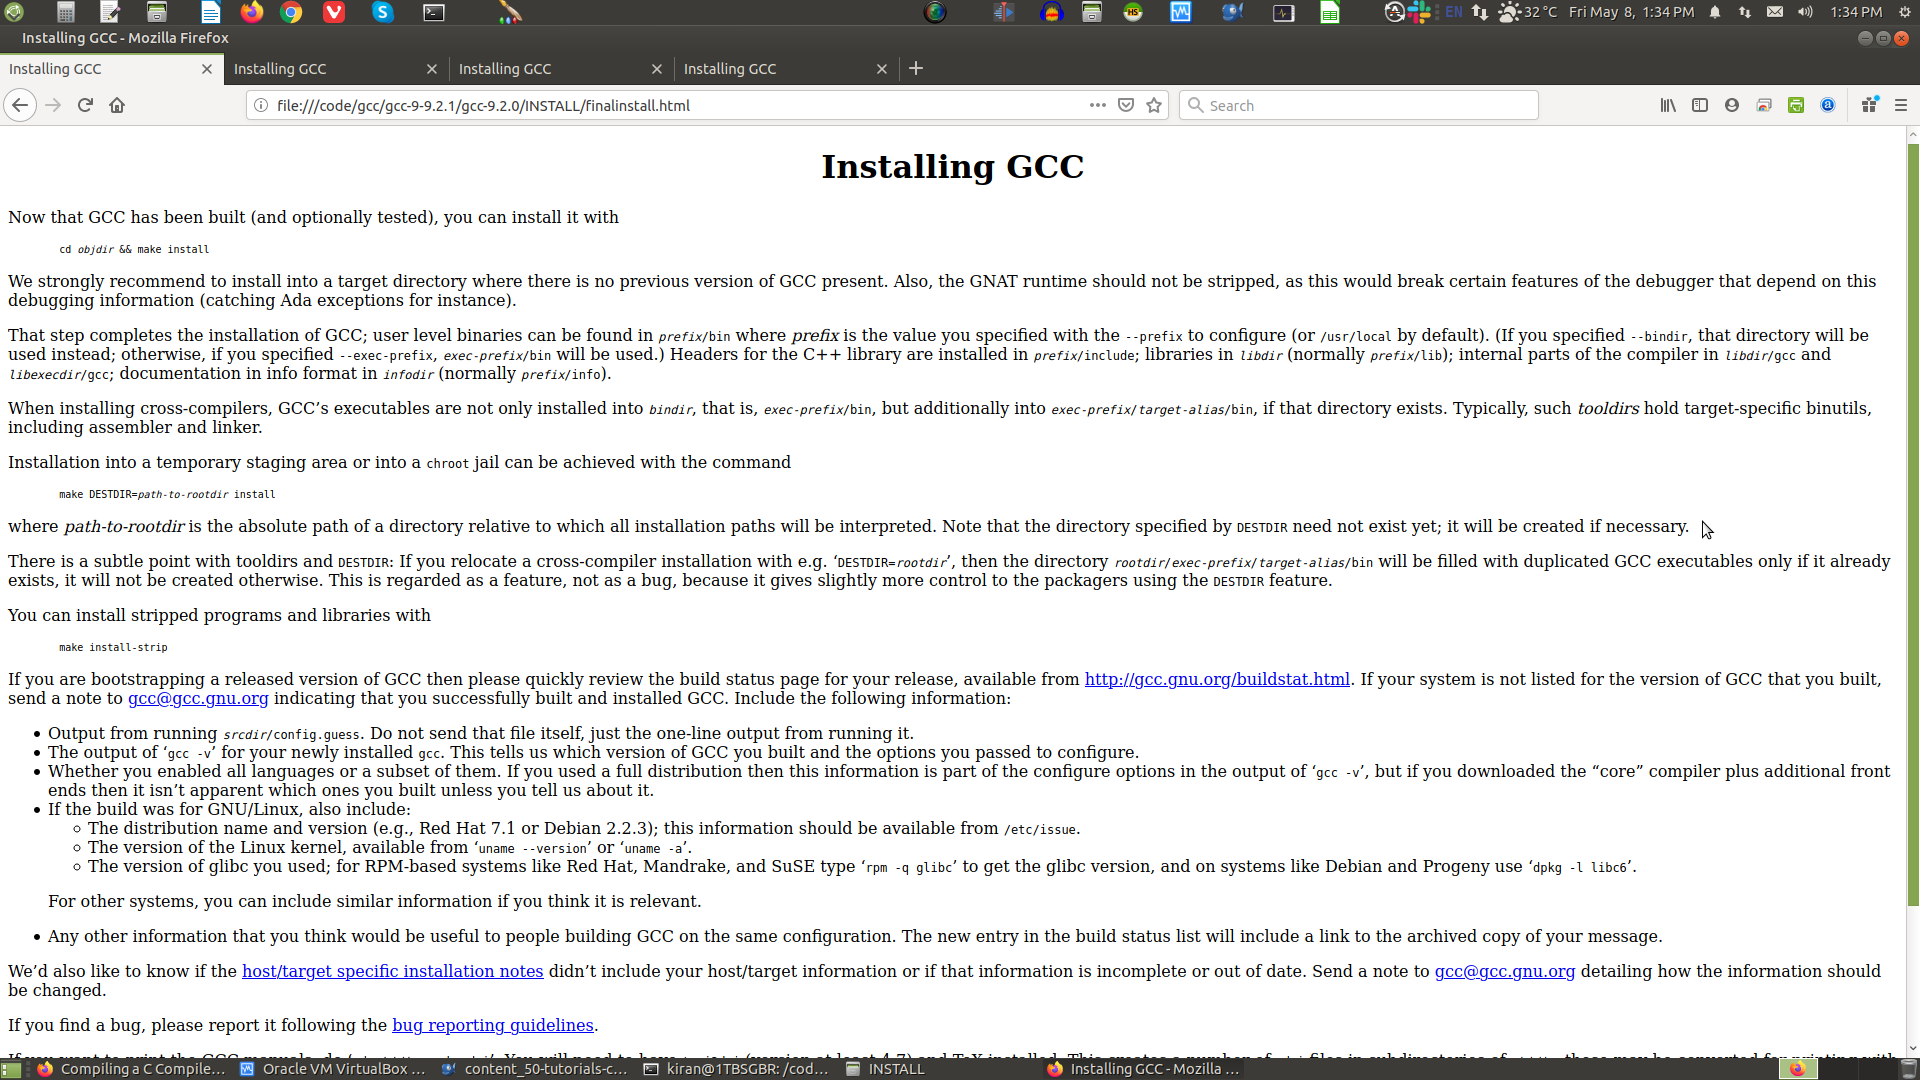 gcc HTML Installation Guide page 5